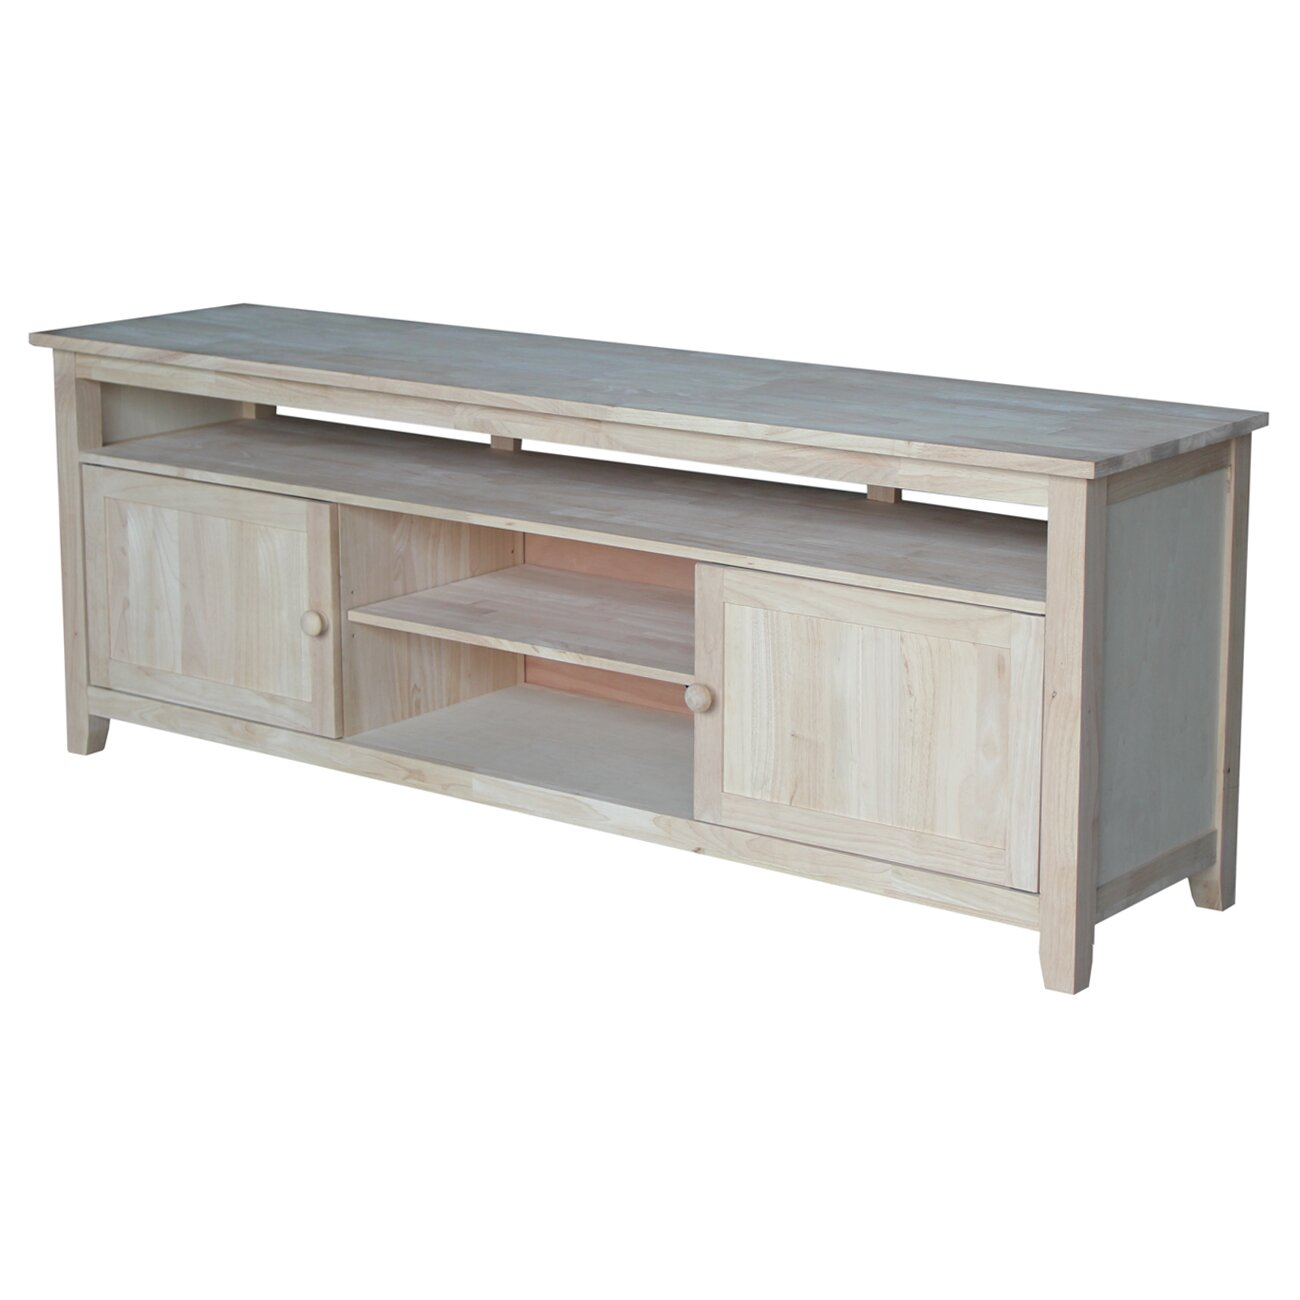 International Concepts TV Stand With 2 Doors 1 Shelf And 2 Cabinets